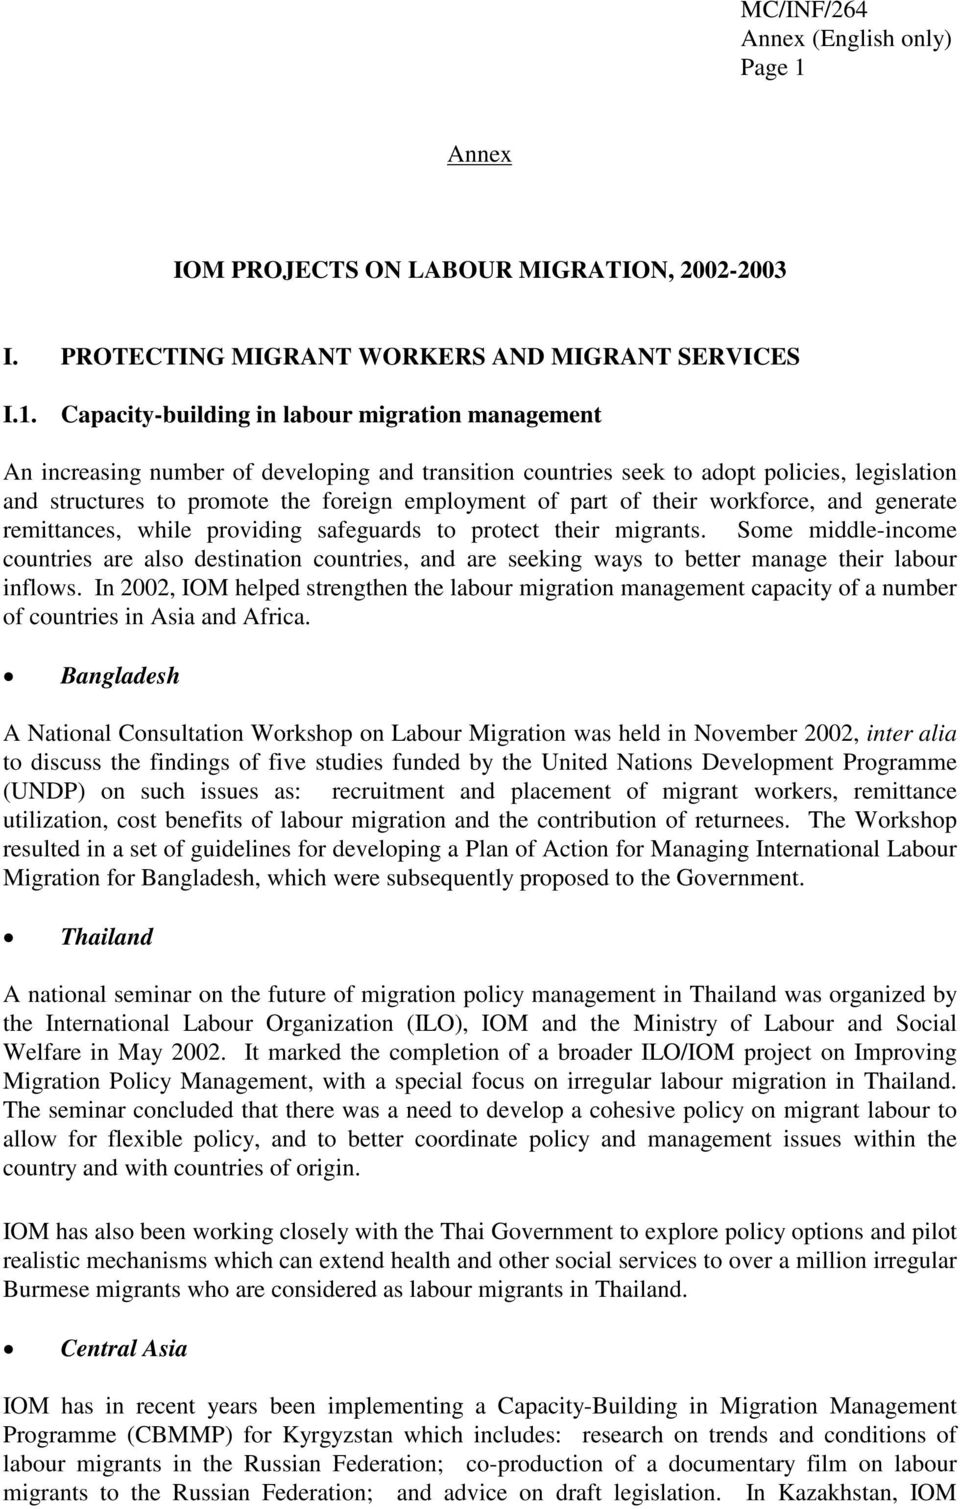 Capacity-building in labour migration management An increasing number of developing and transition countries seek to adopt policies, legislation and structures to promote the foreign employment of